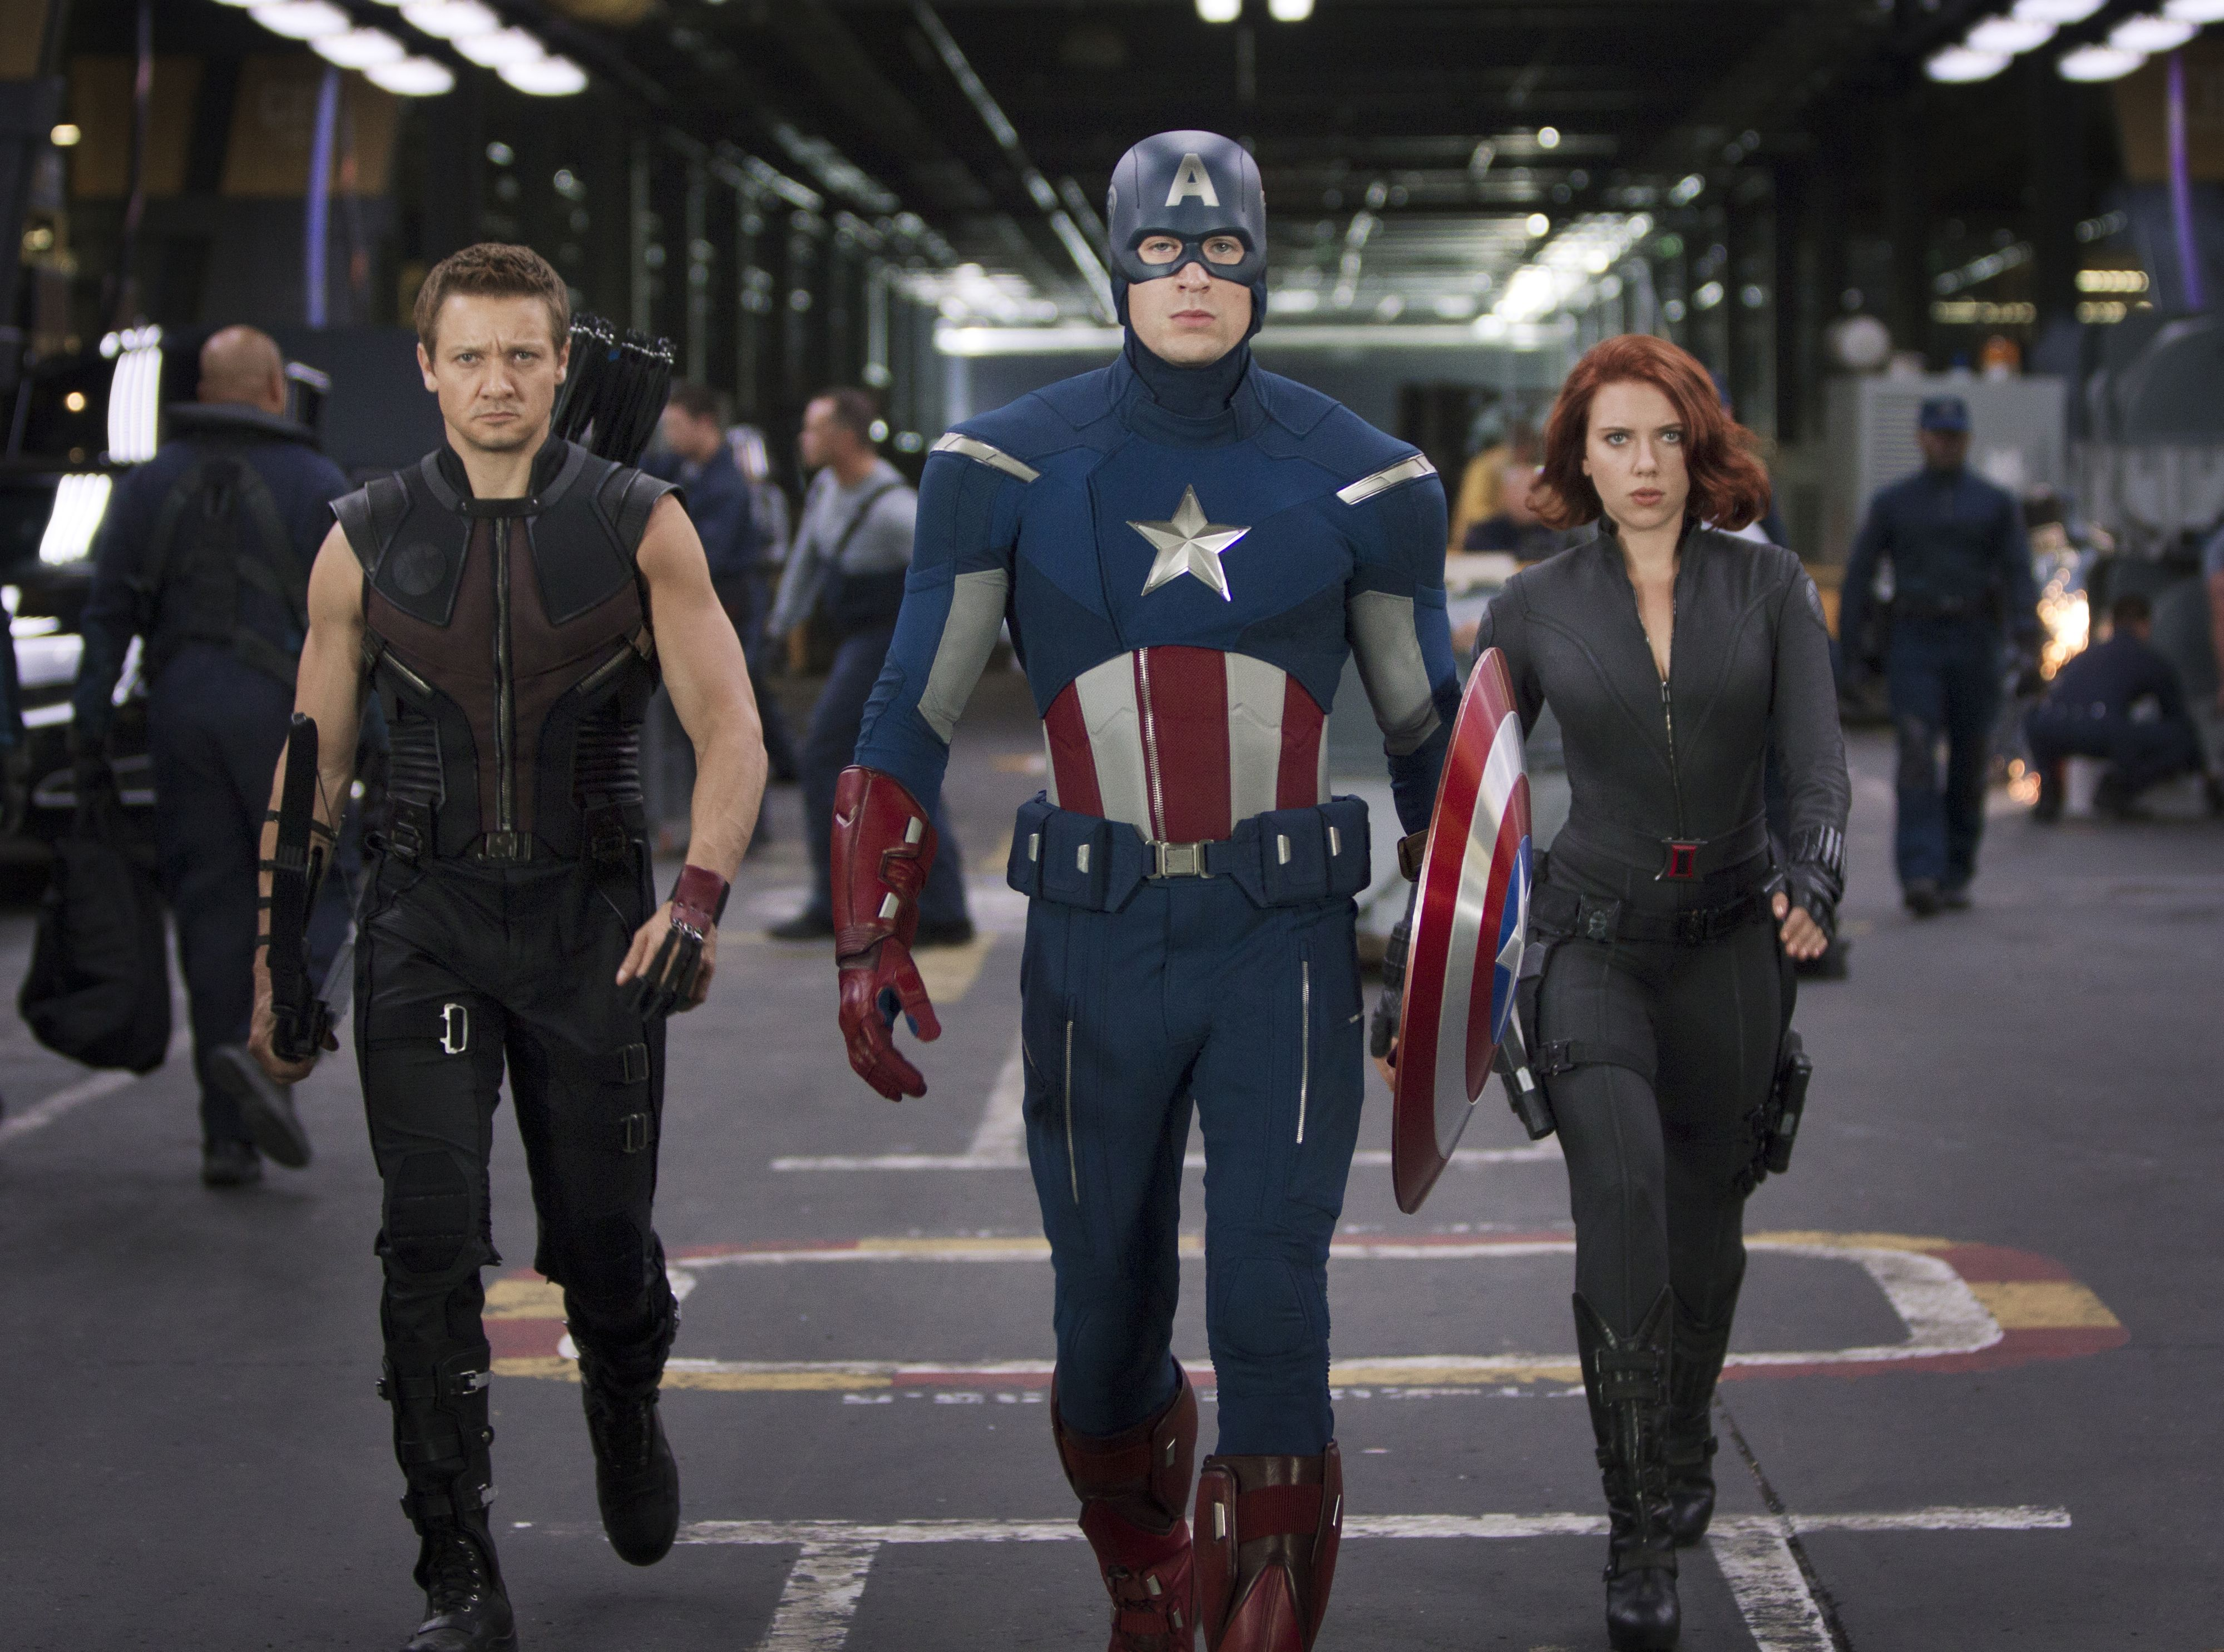 Hawkeye, Captain America and Black Widow in The Avengers